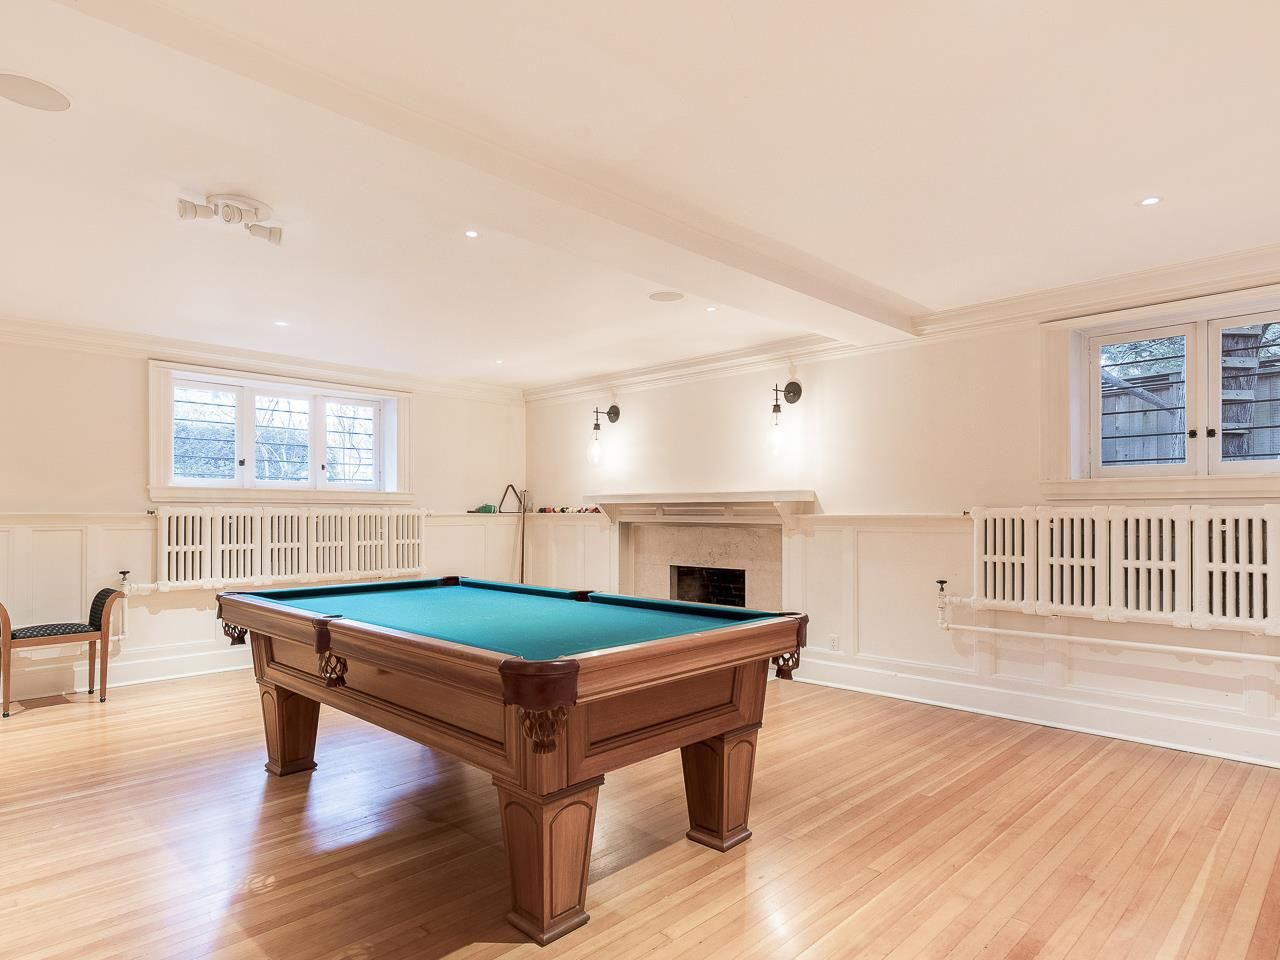 Photo 23: Photos: 3369 THE CRESCENT in Vancouver: Shaughnessy House for sale (Vancouver West)  : MLS®# R2534743